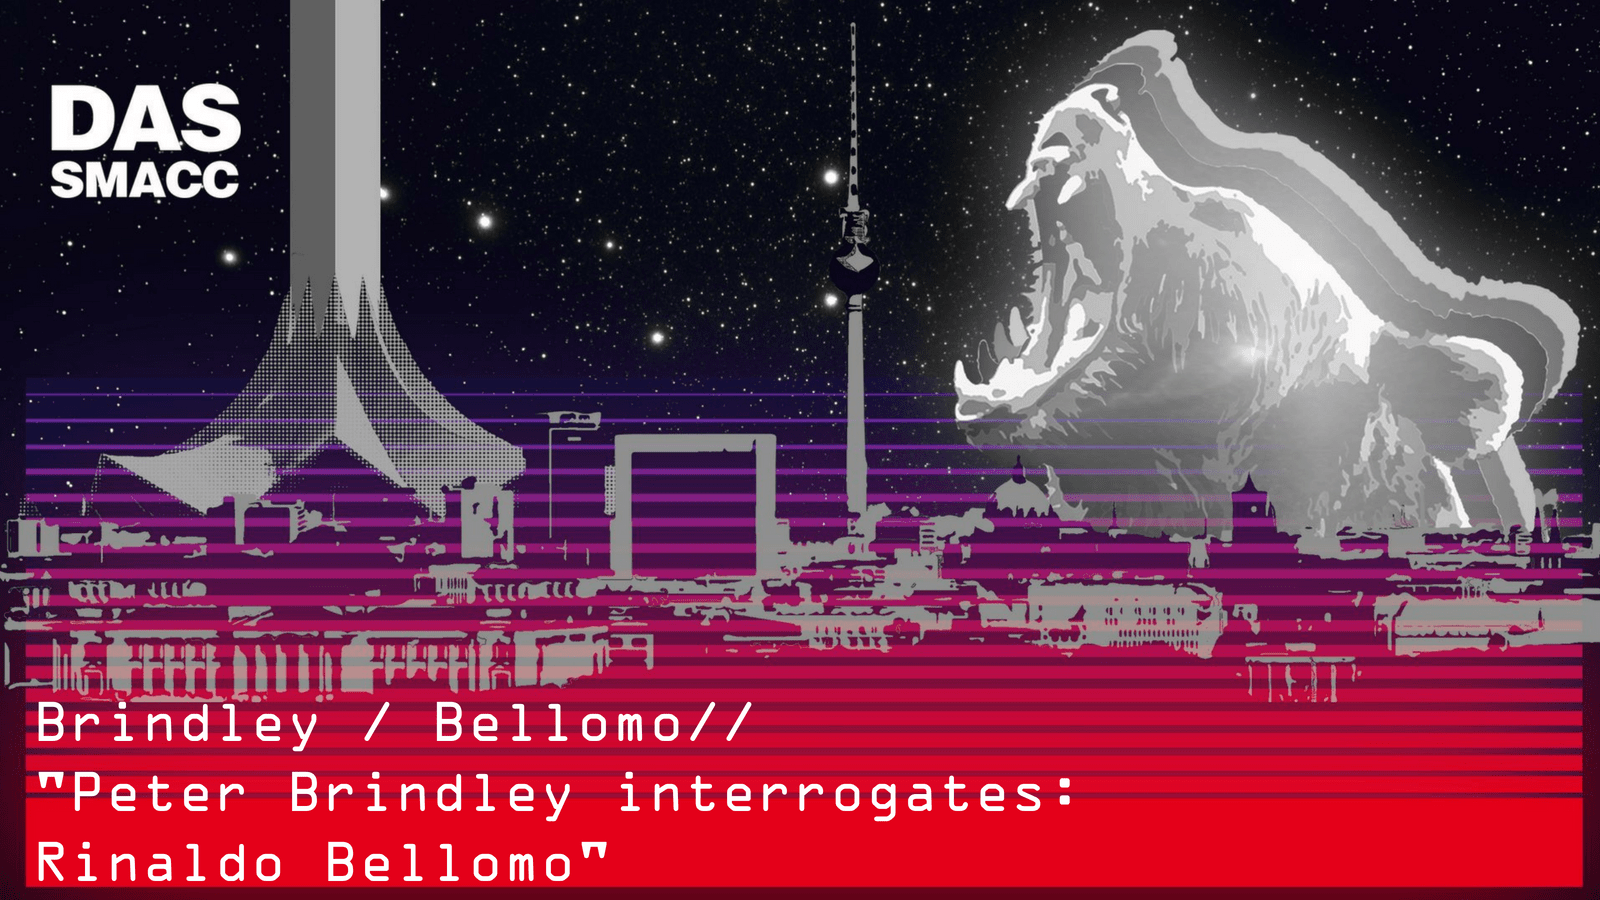 Peter Brindley interrogates: Rinaldo Bellomo